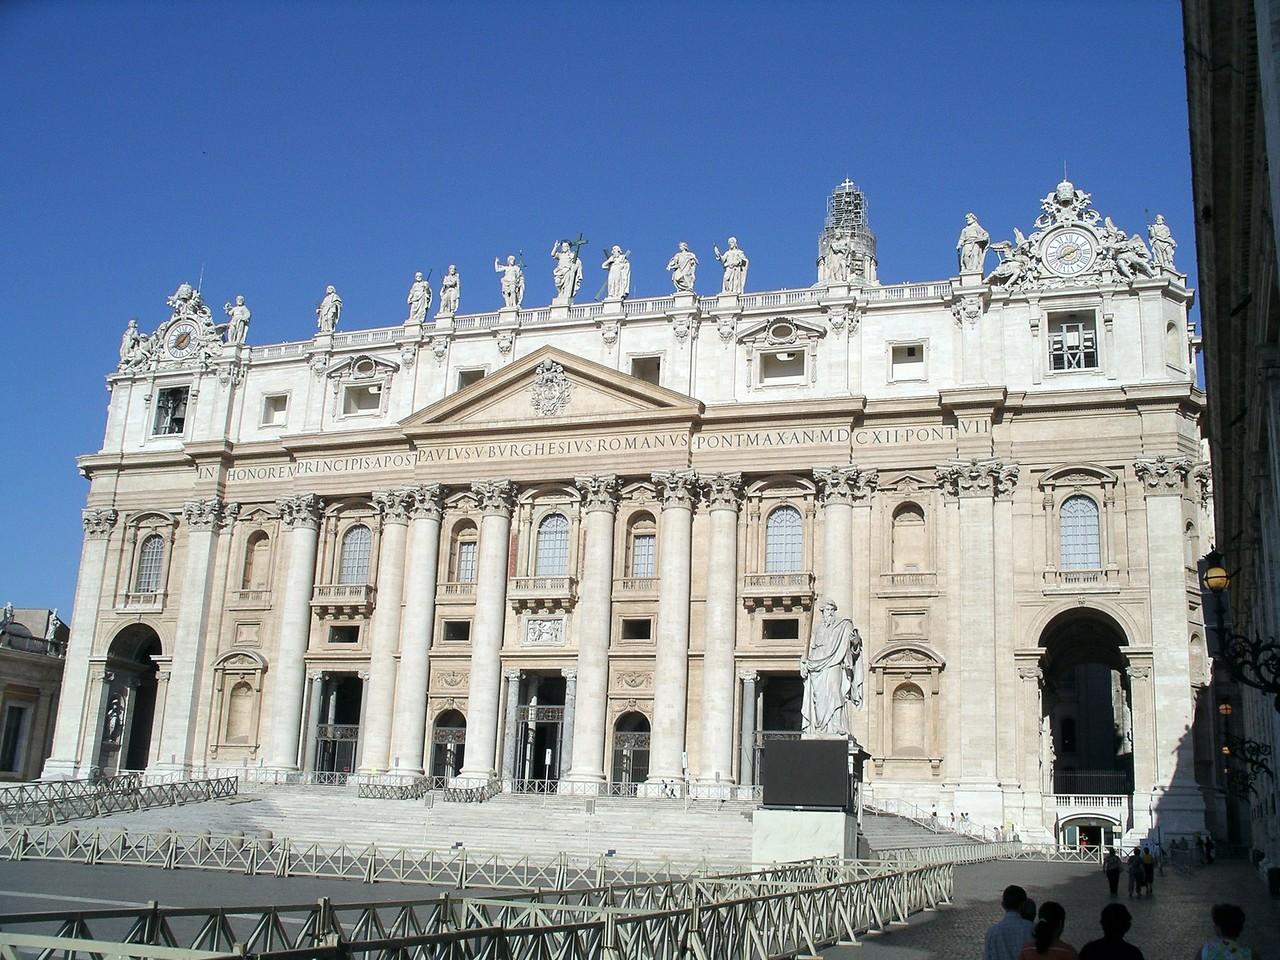 St Peter's Basilica at Rome